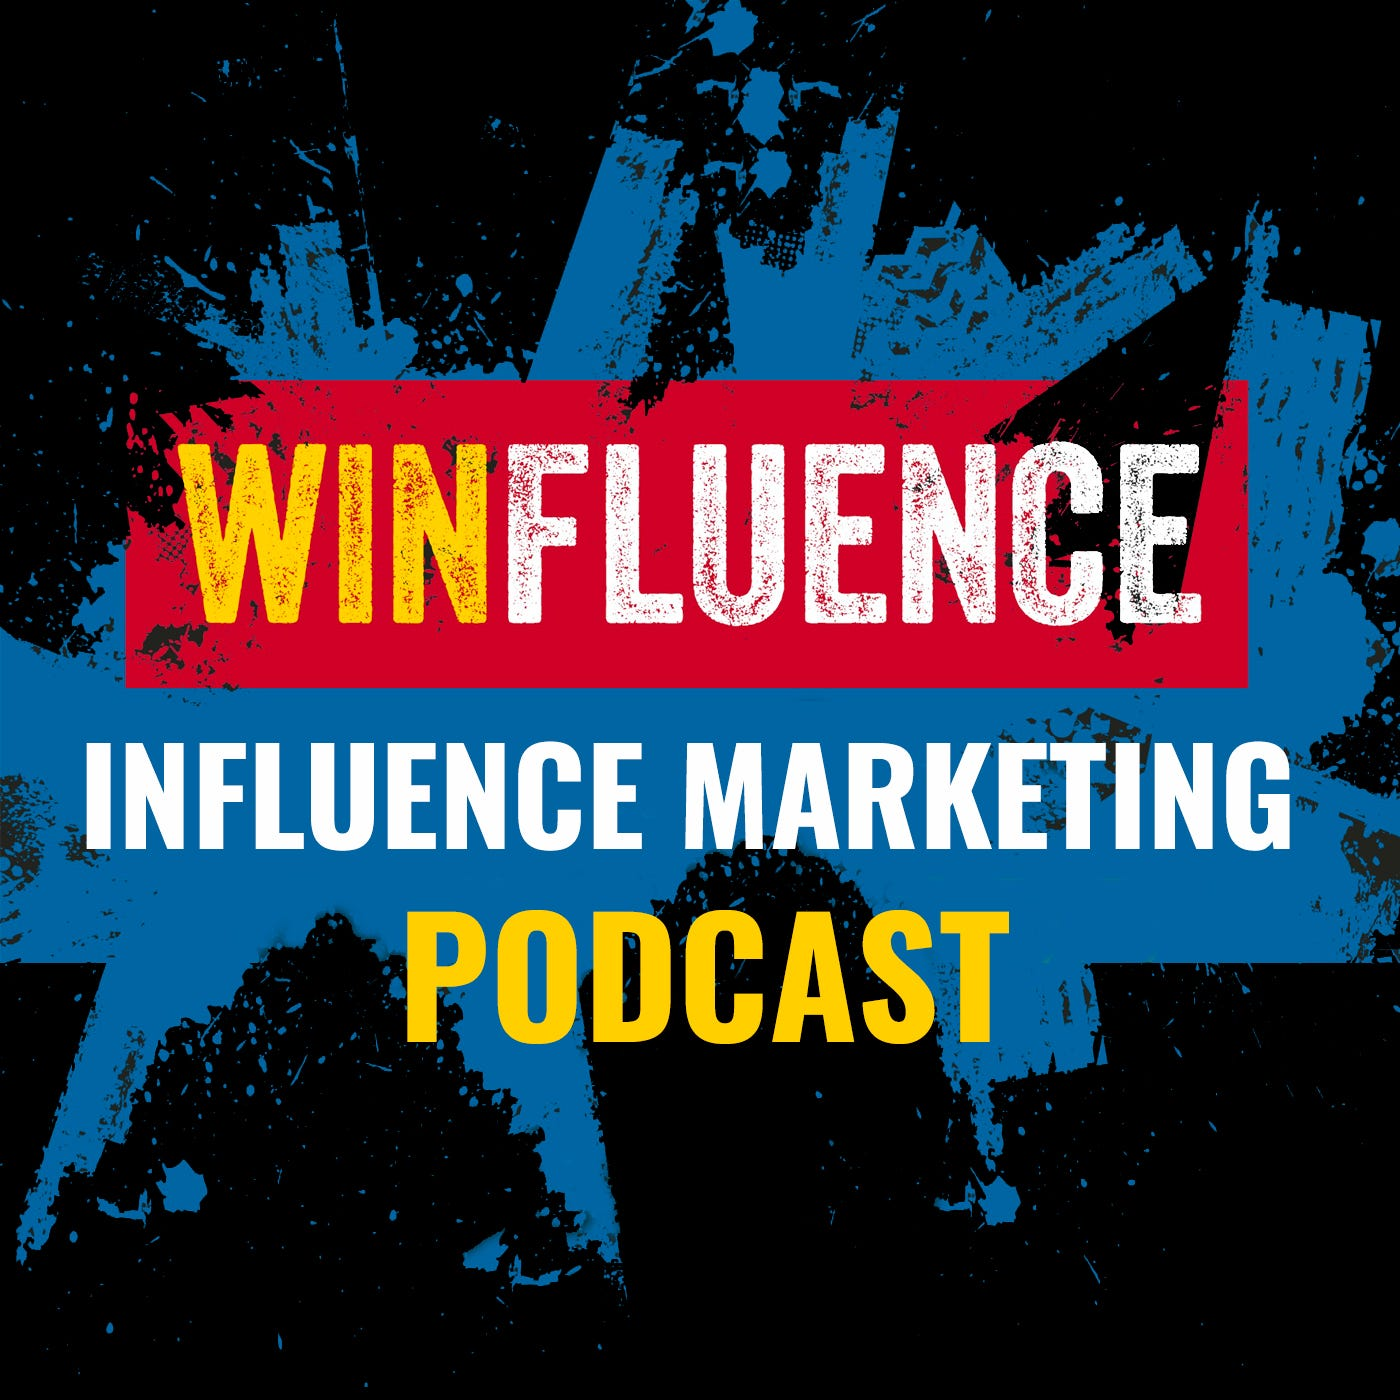 The Advantage of White Lists and Dark Posts for Influencer Marketing